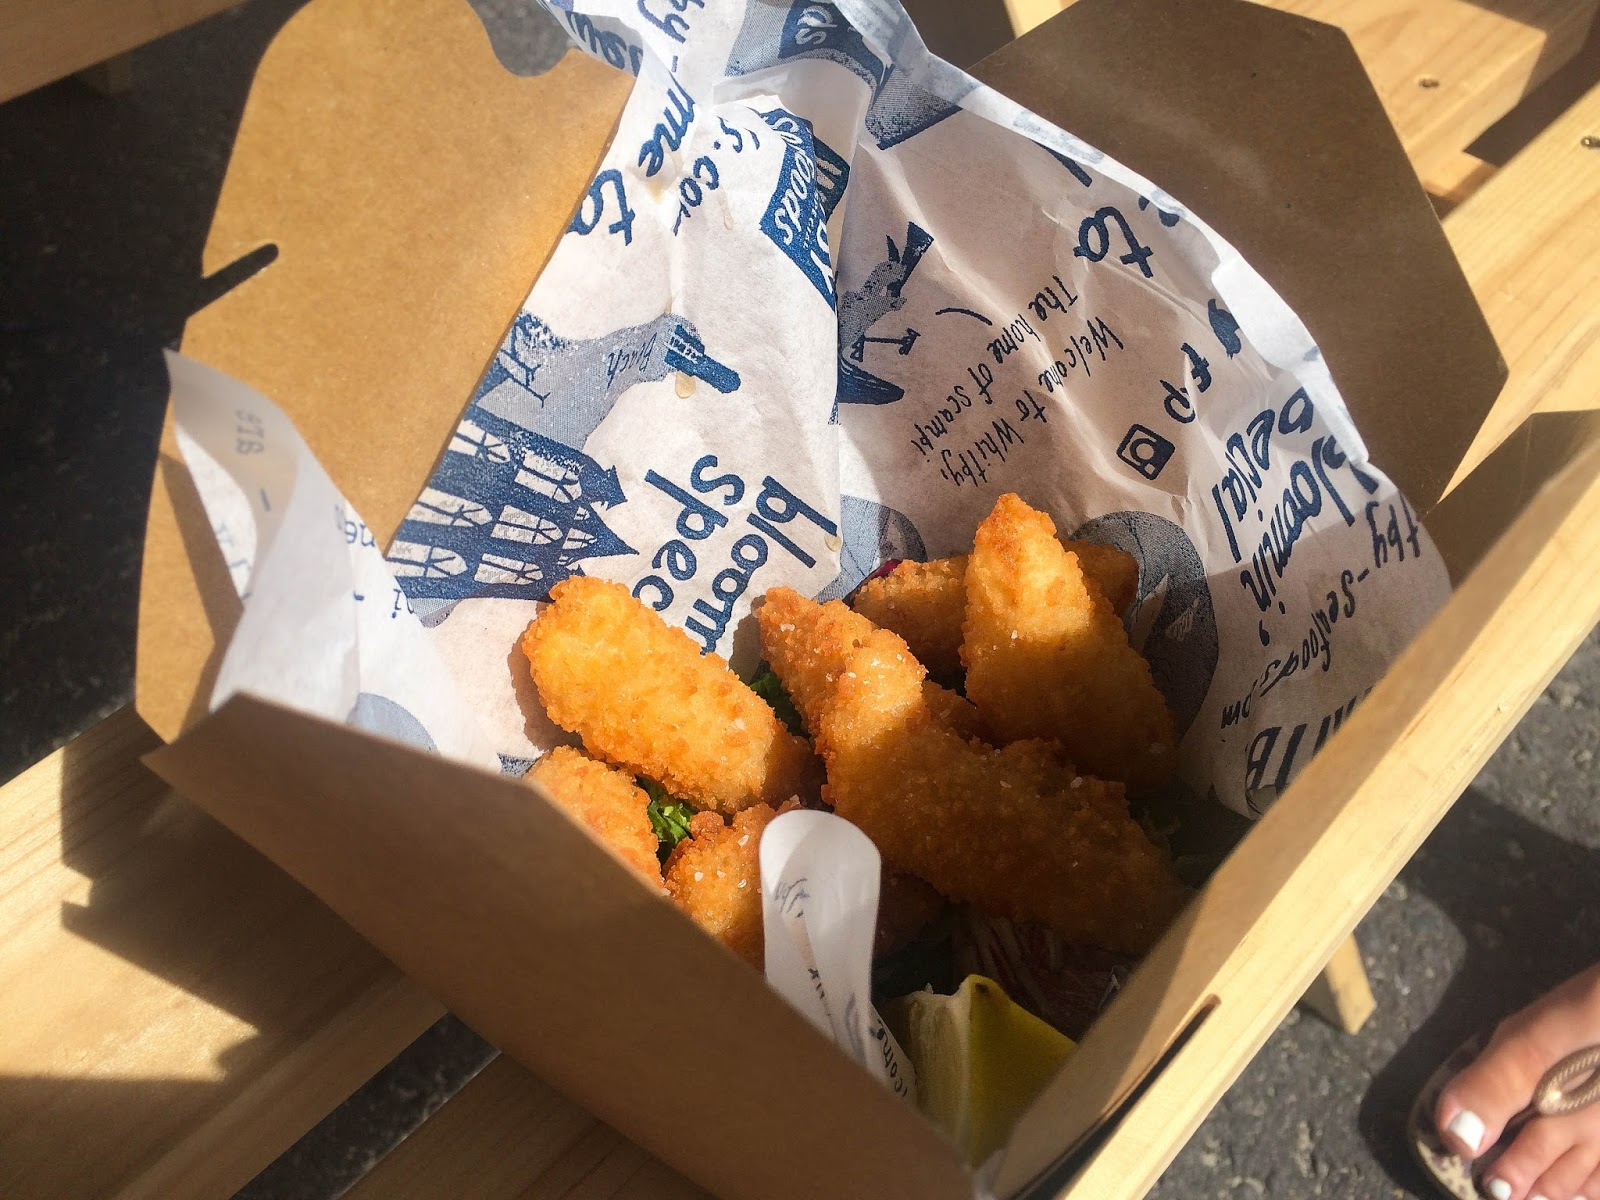 Pommery Dorset Seafood Festival in Weymouth, scampi, street food, food bloggers, lifestyle bloggers